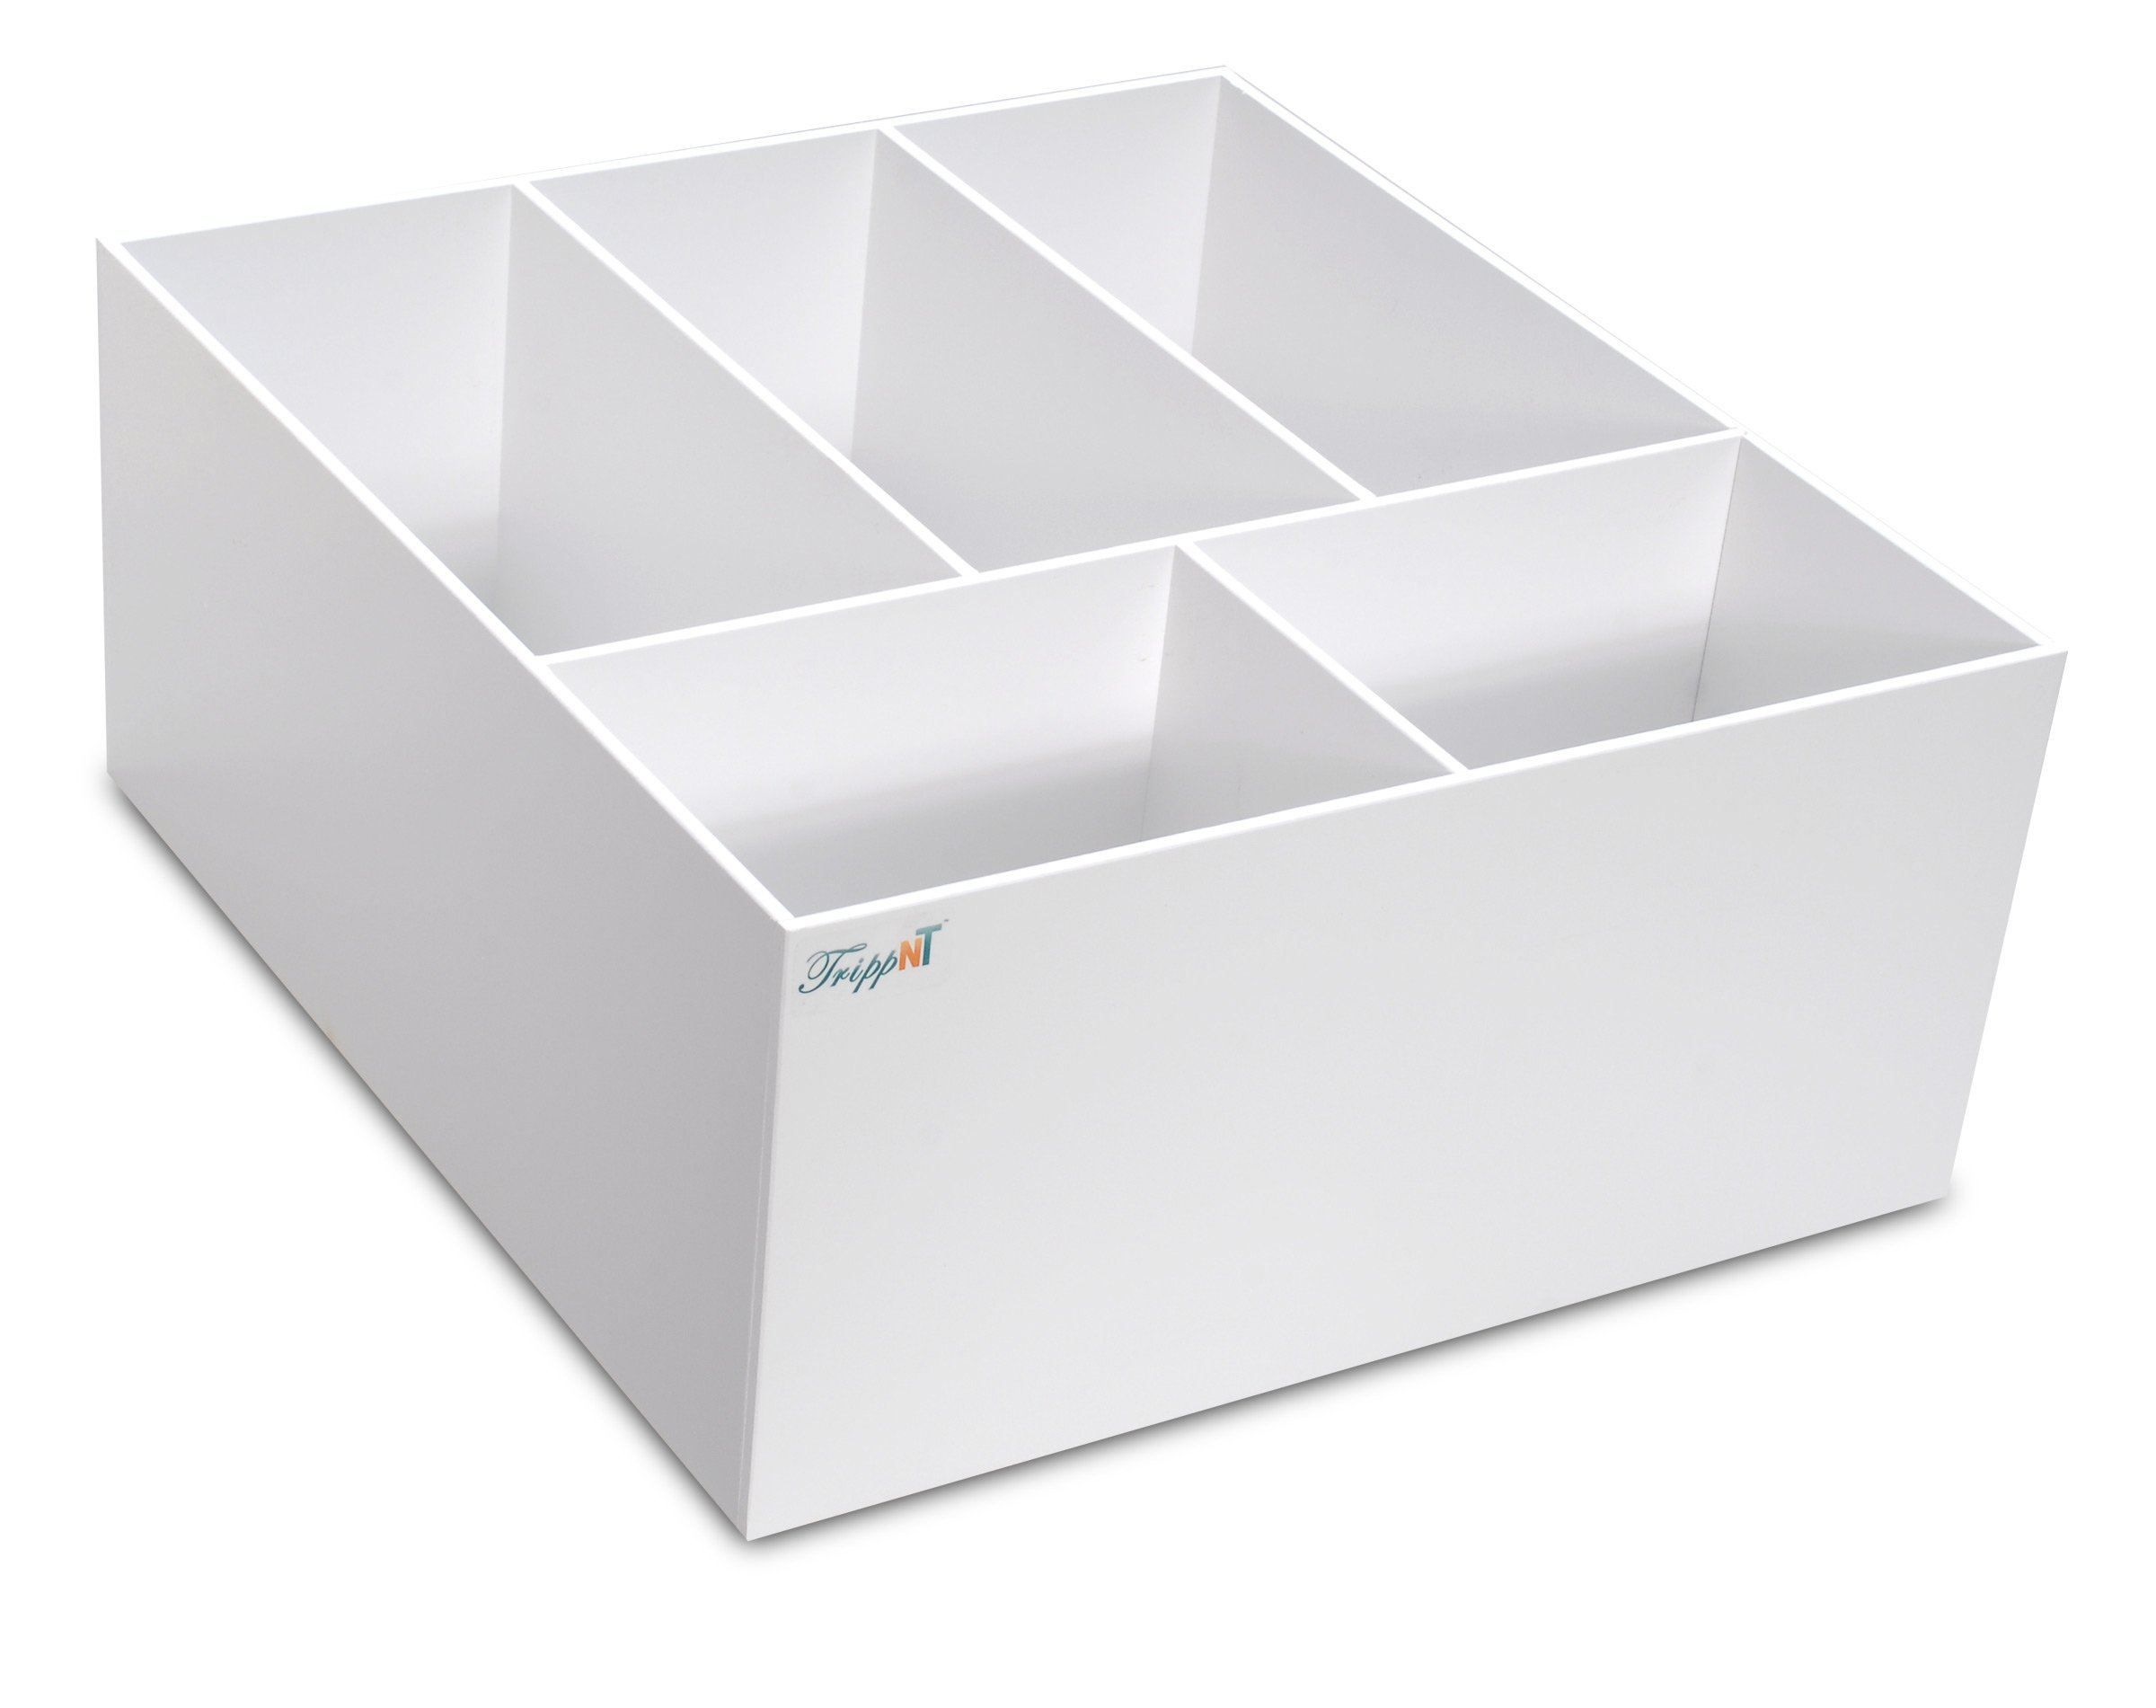 TrippNT 50549 White PVC Plastic 8'' Extra Deep Drawer Organizer, 5 Compartments, 17.5'' Width x 8'' Height x 19.5'' Depth